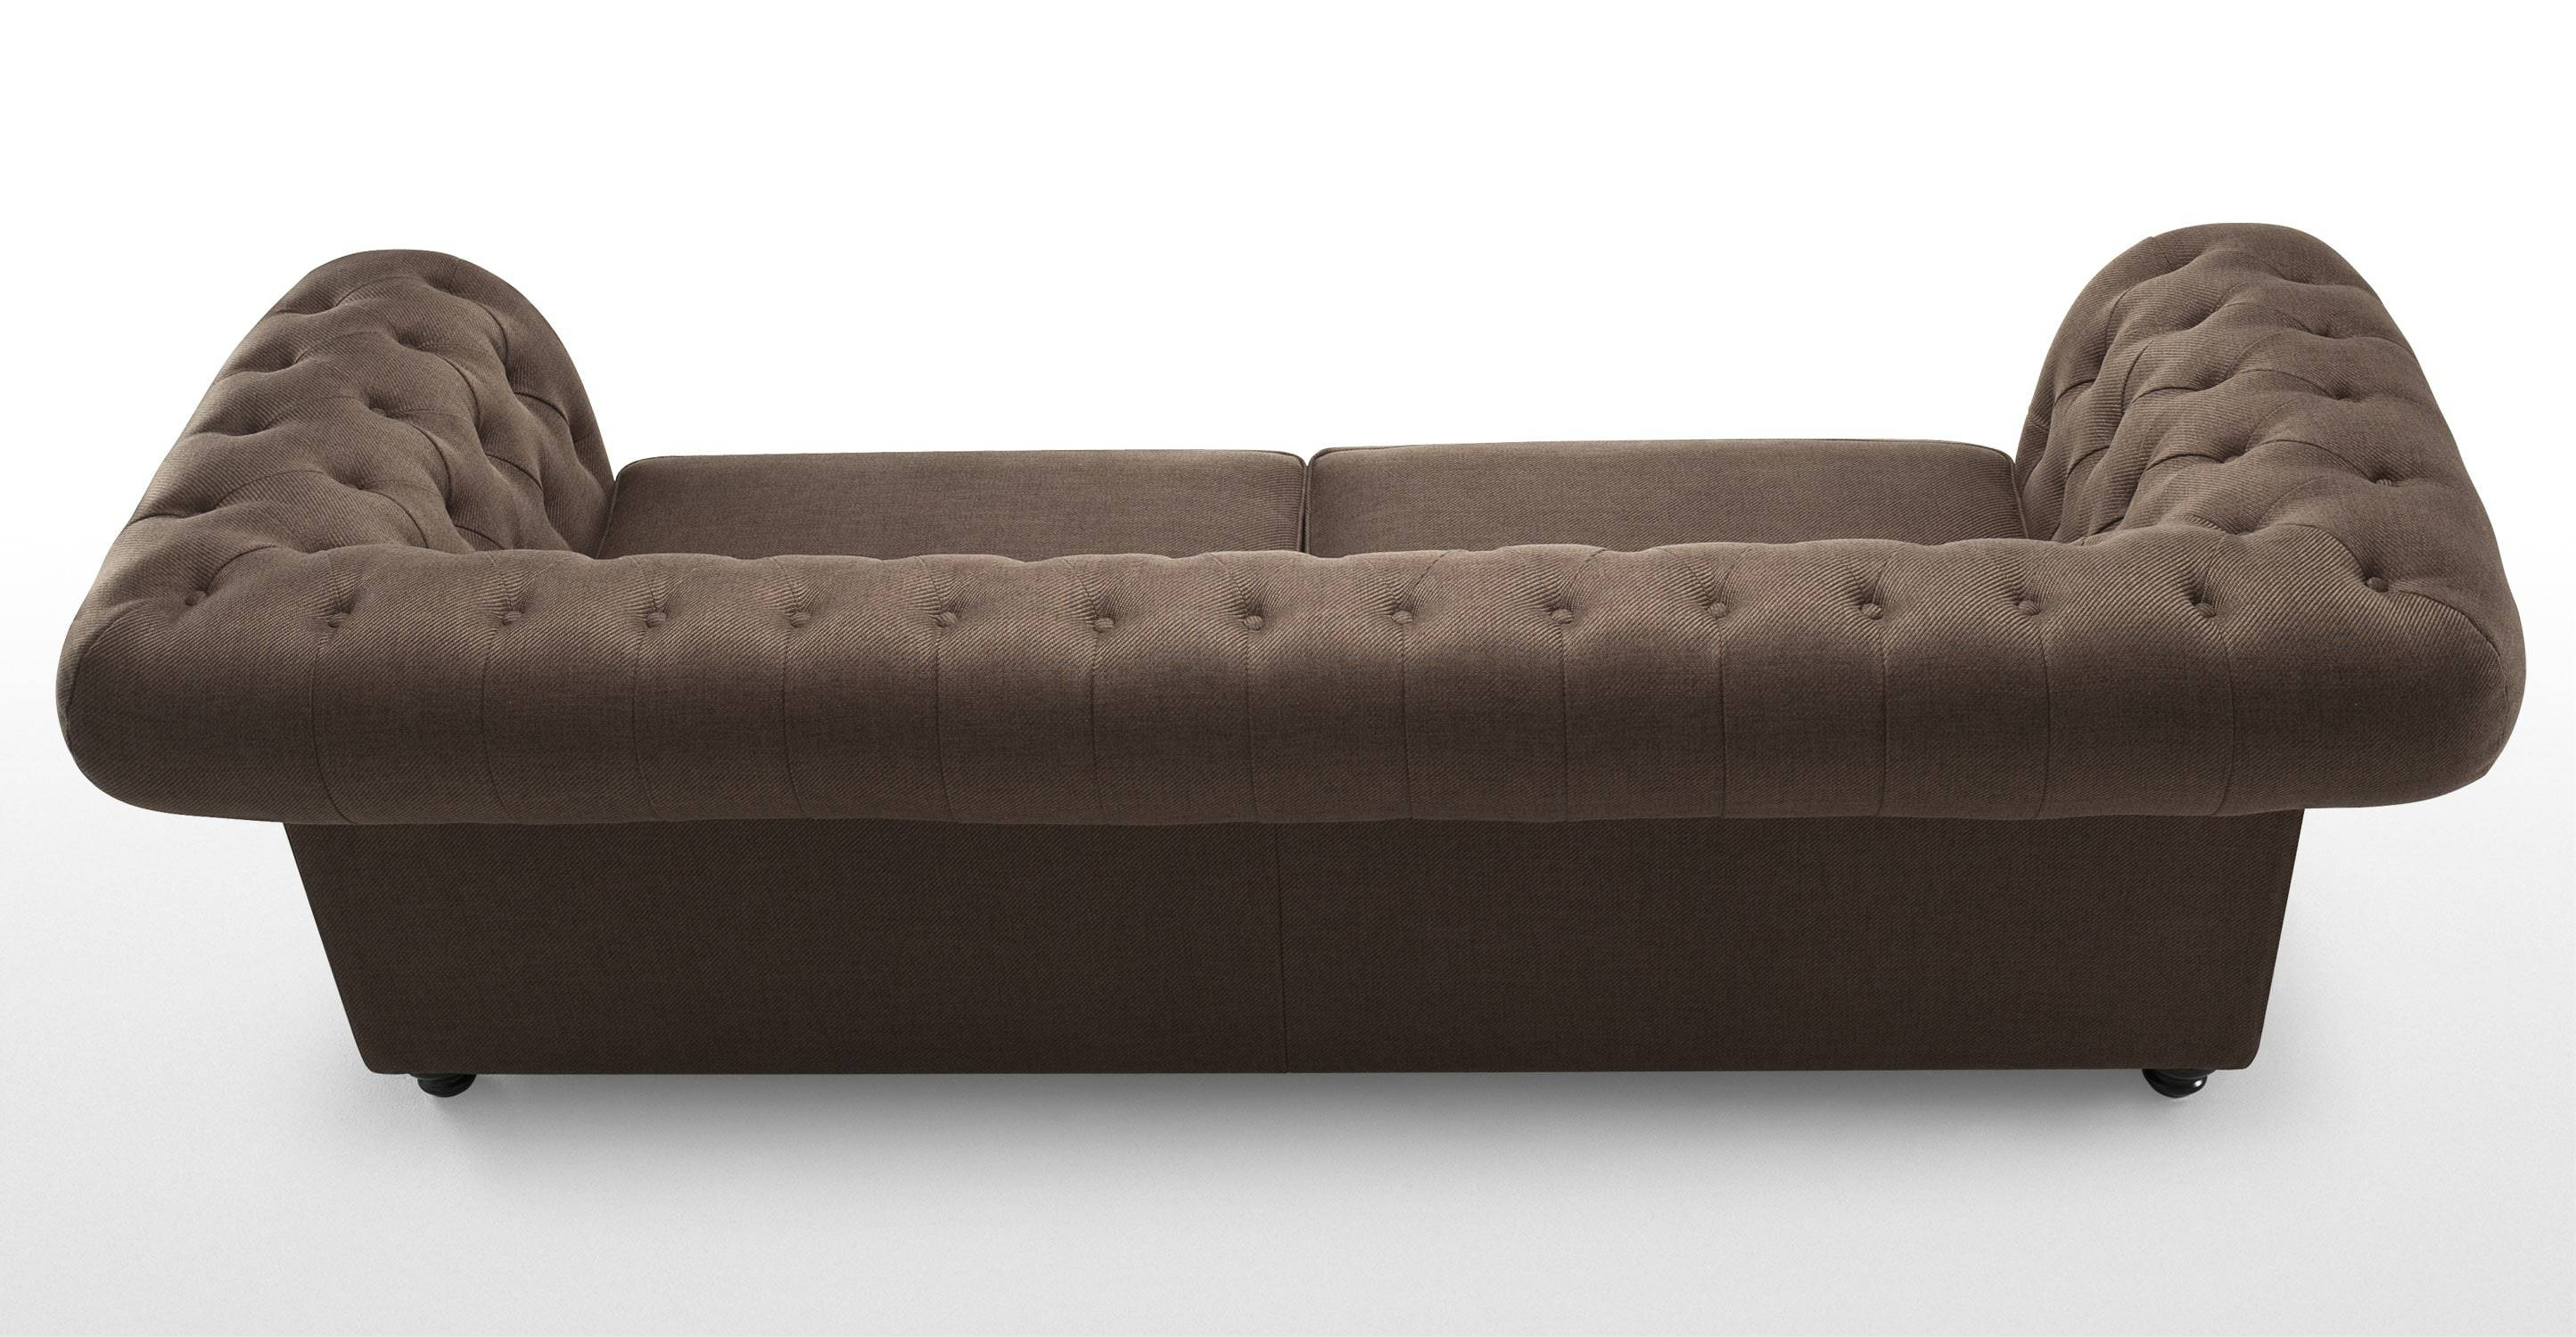 Branagh 3 Seater Brown Chesterfield Sofa | Made in Chesterfield Furniture (Image 6 of 30)